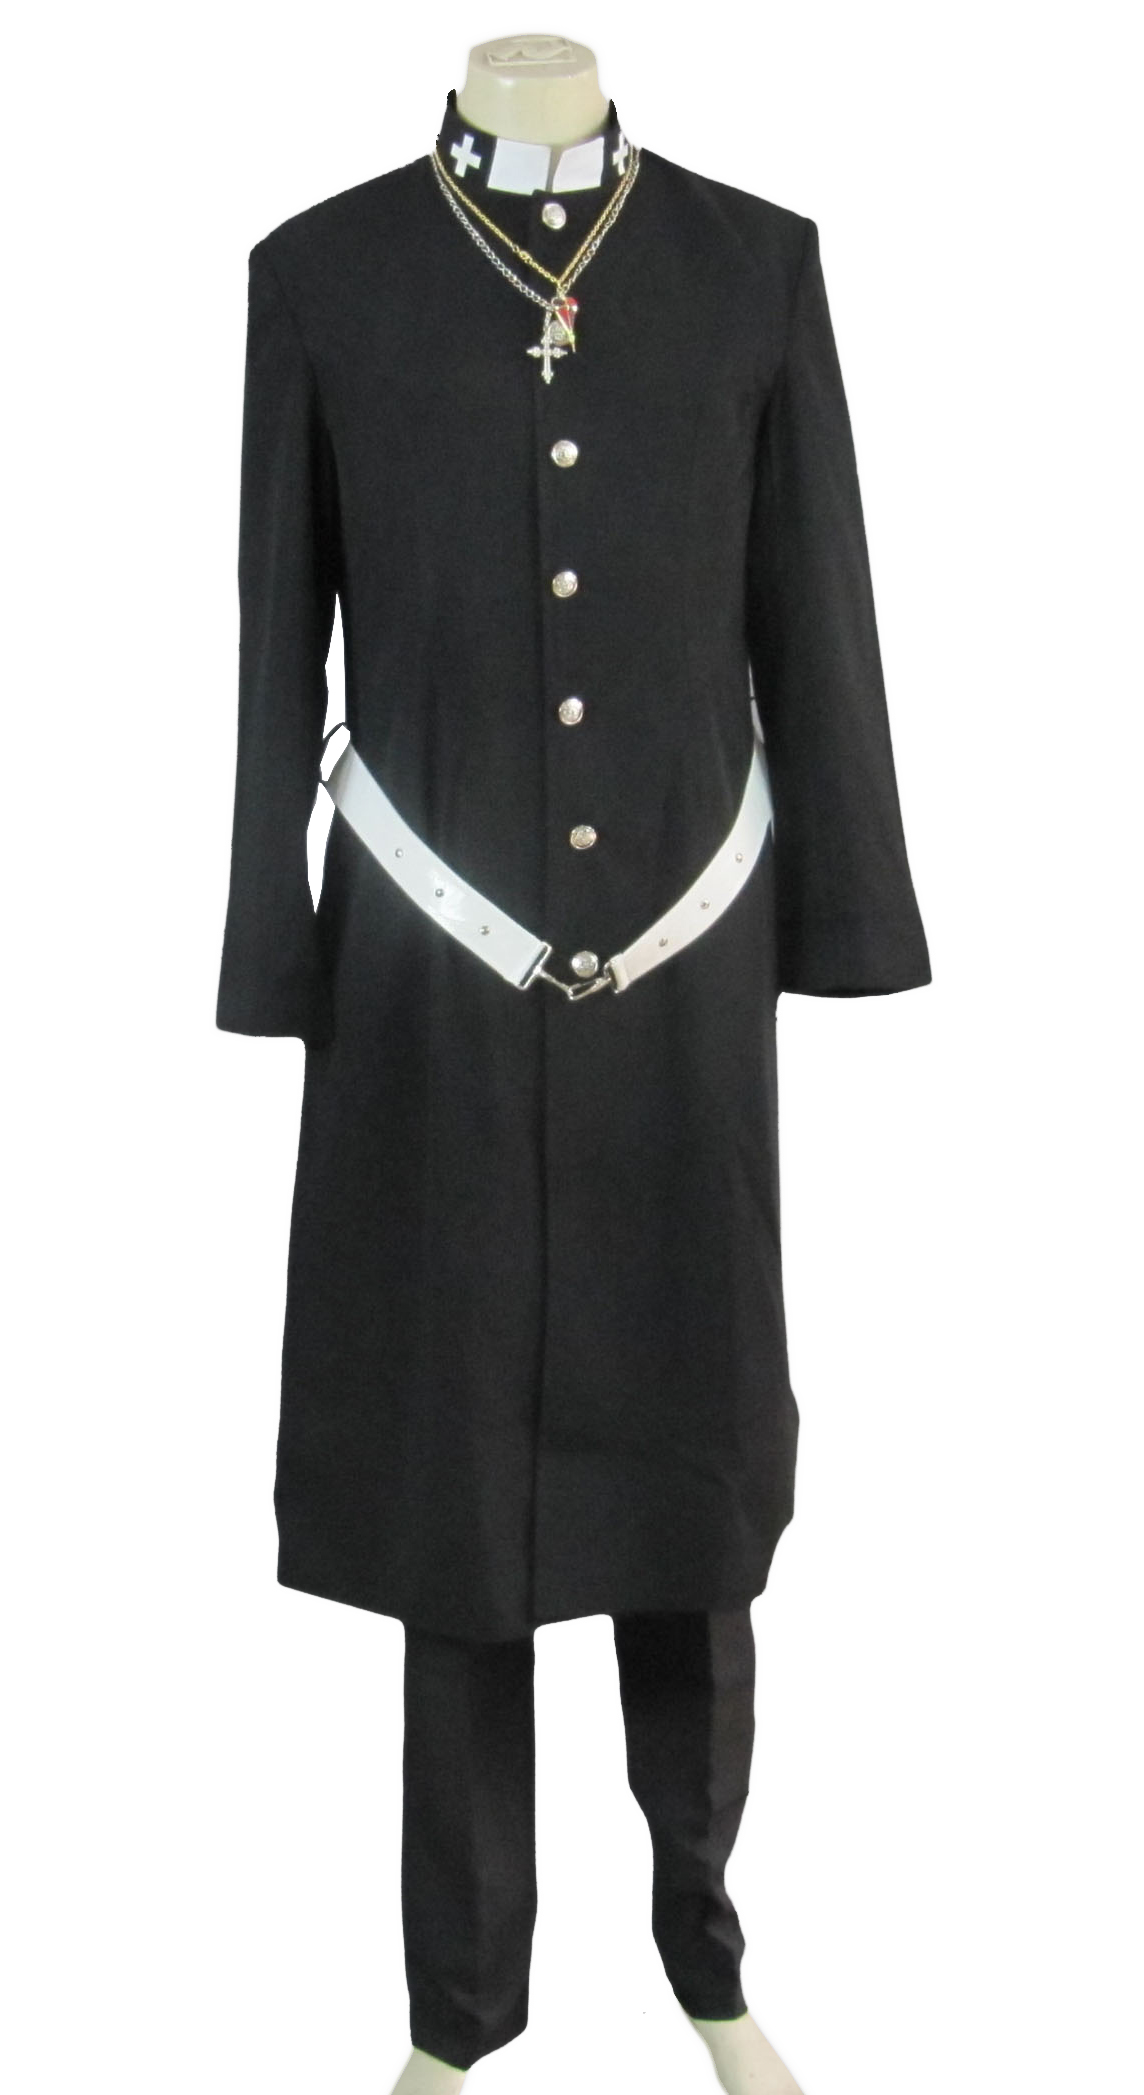 Blue Exorcist Shiro Fujimoto Priest Uniform Cosplay Costume